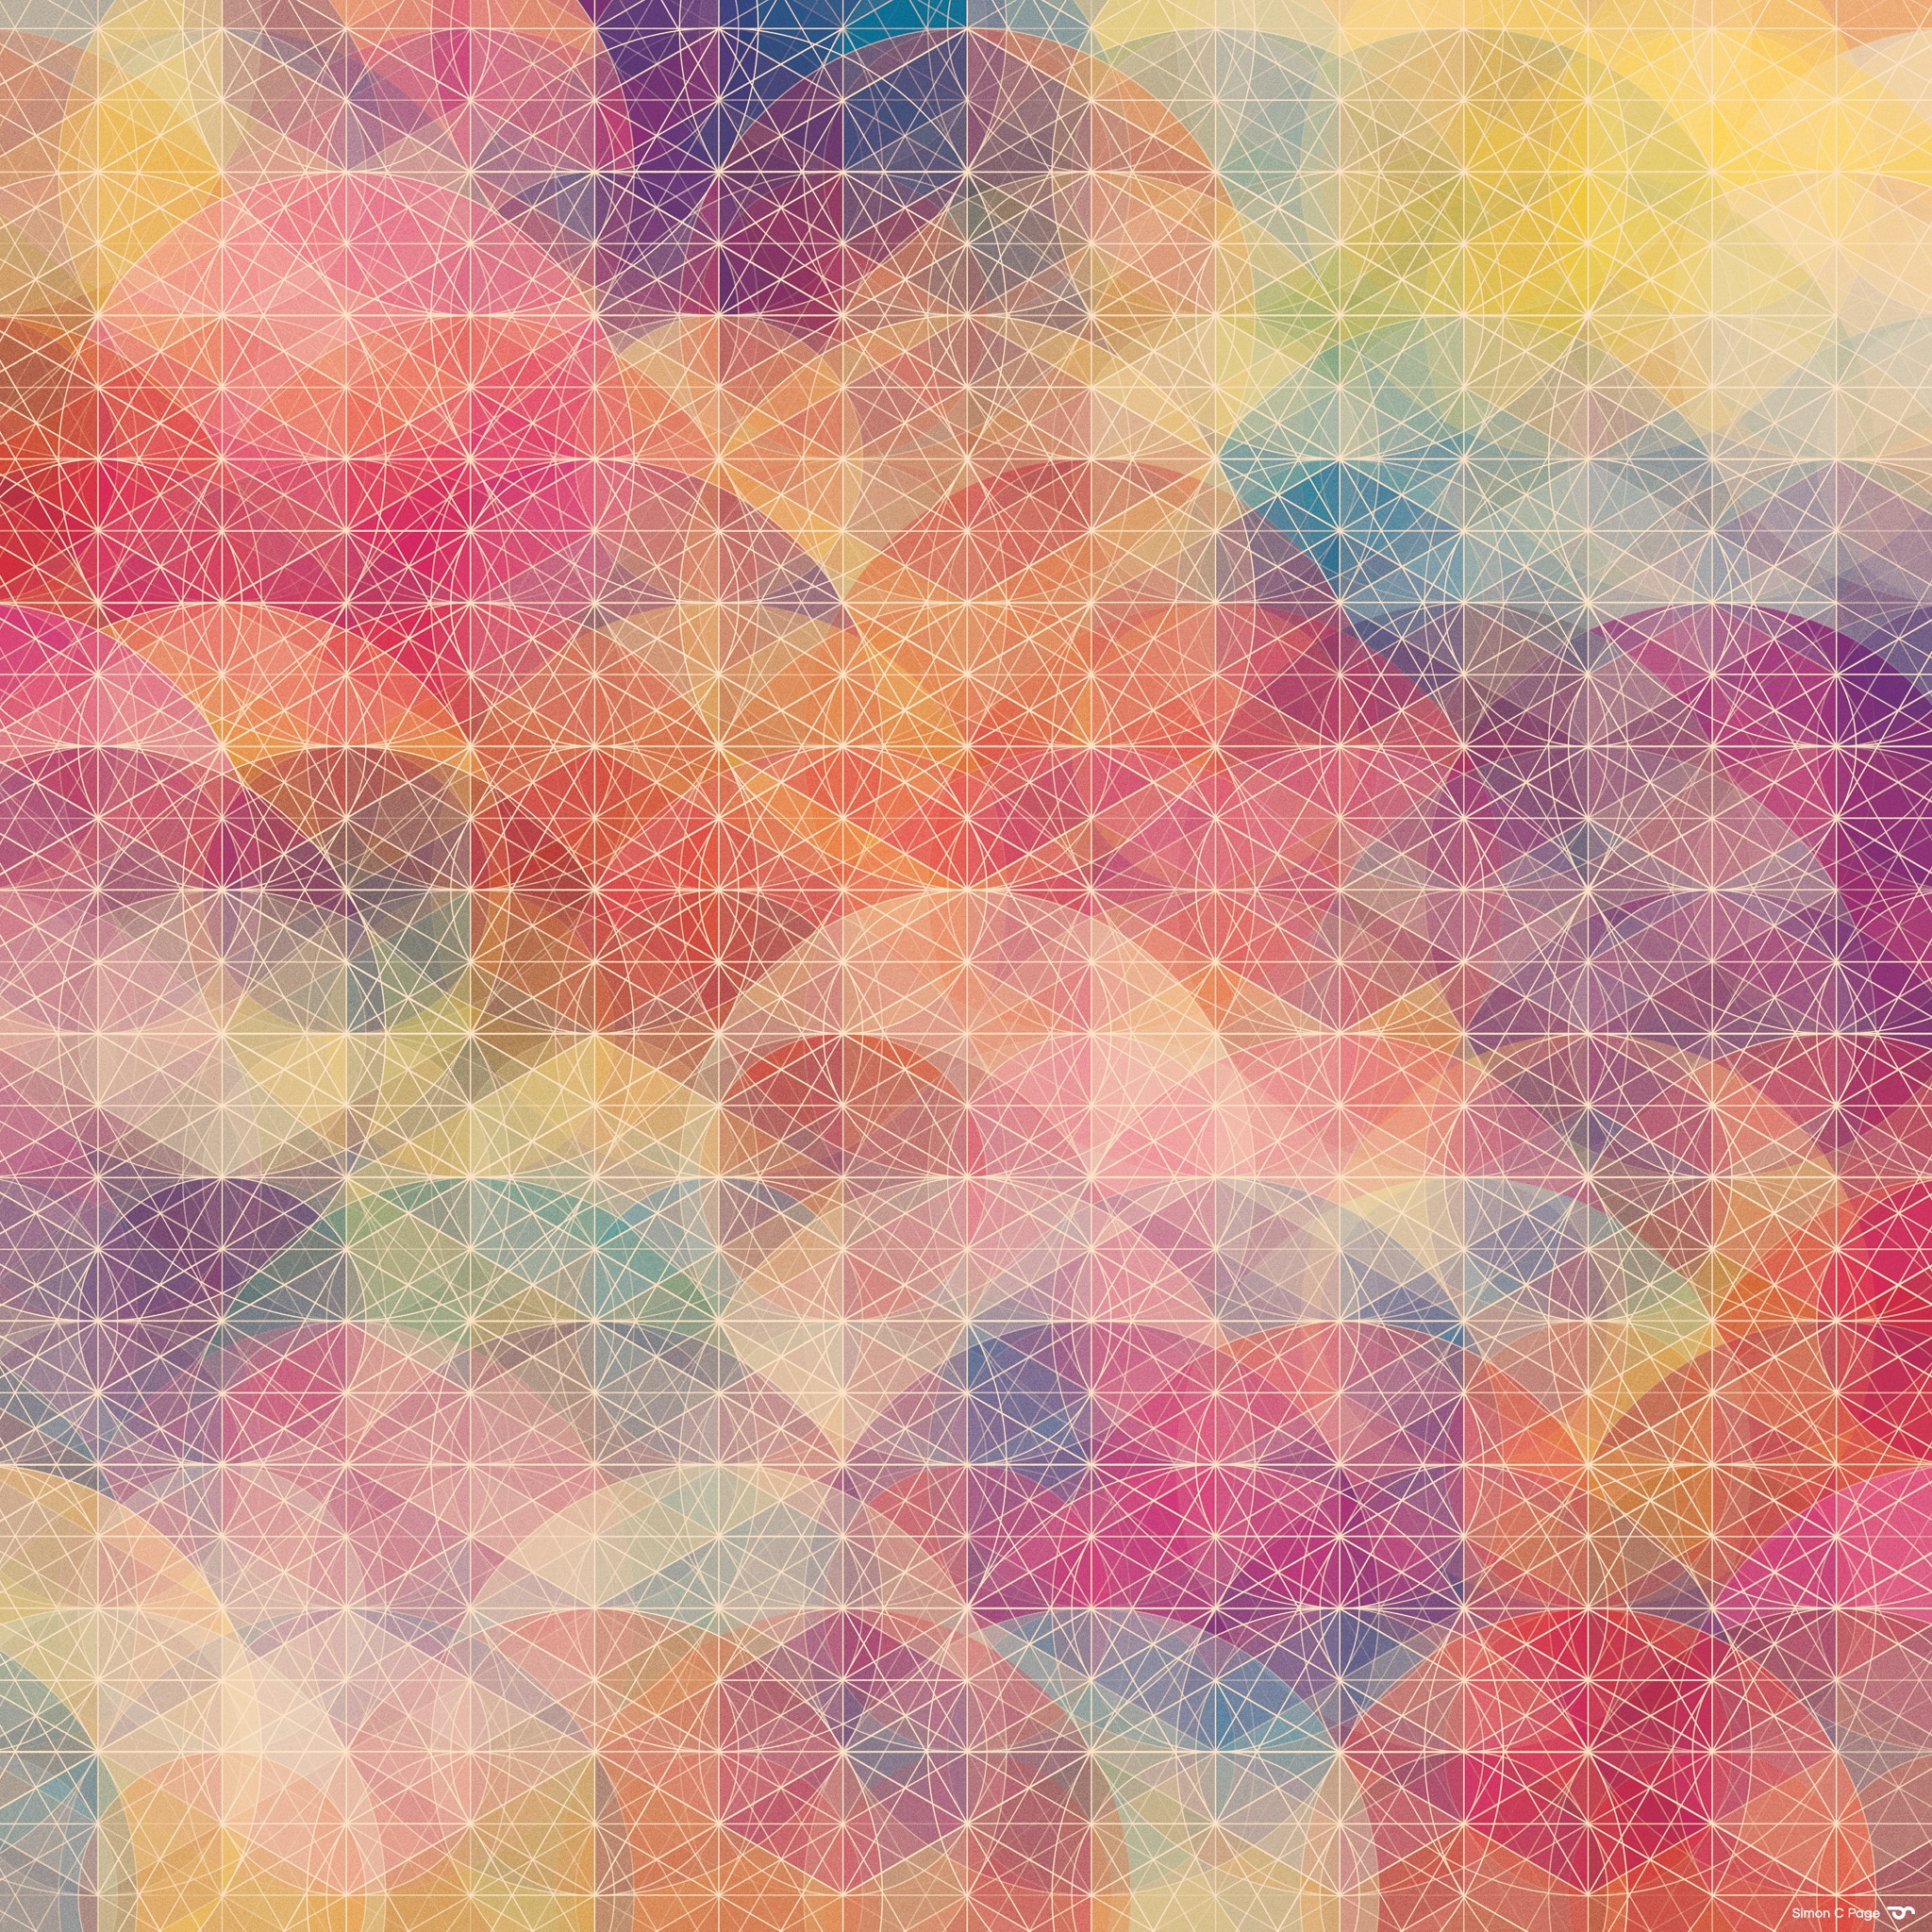 Abstract Wallpapers - HDwallpapers.net